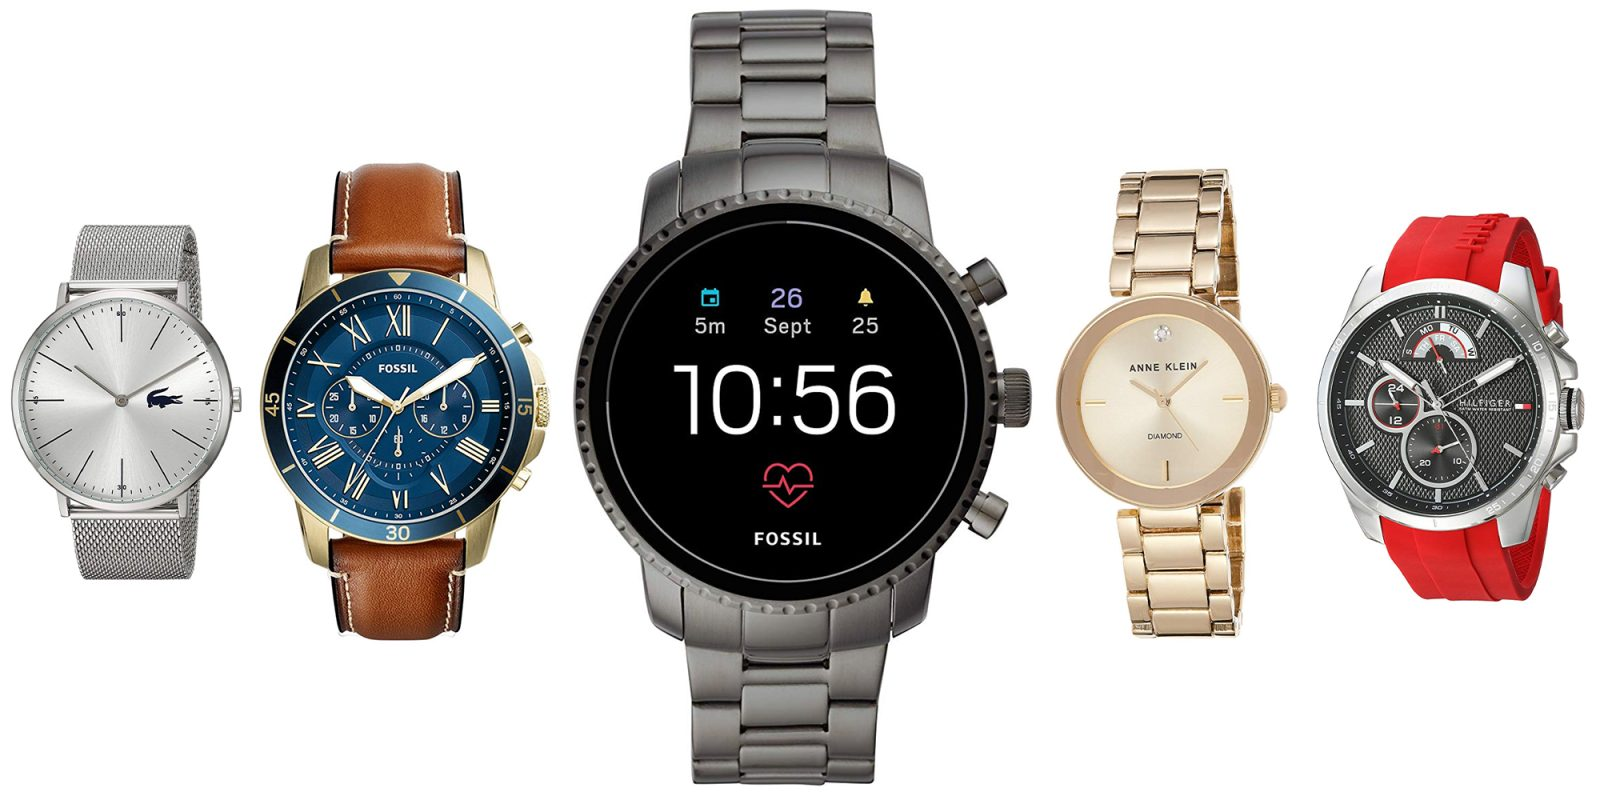 Amazon's huge watch sale starts at $13, today only: Fossil, Lacoste, many more